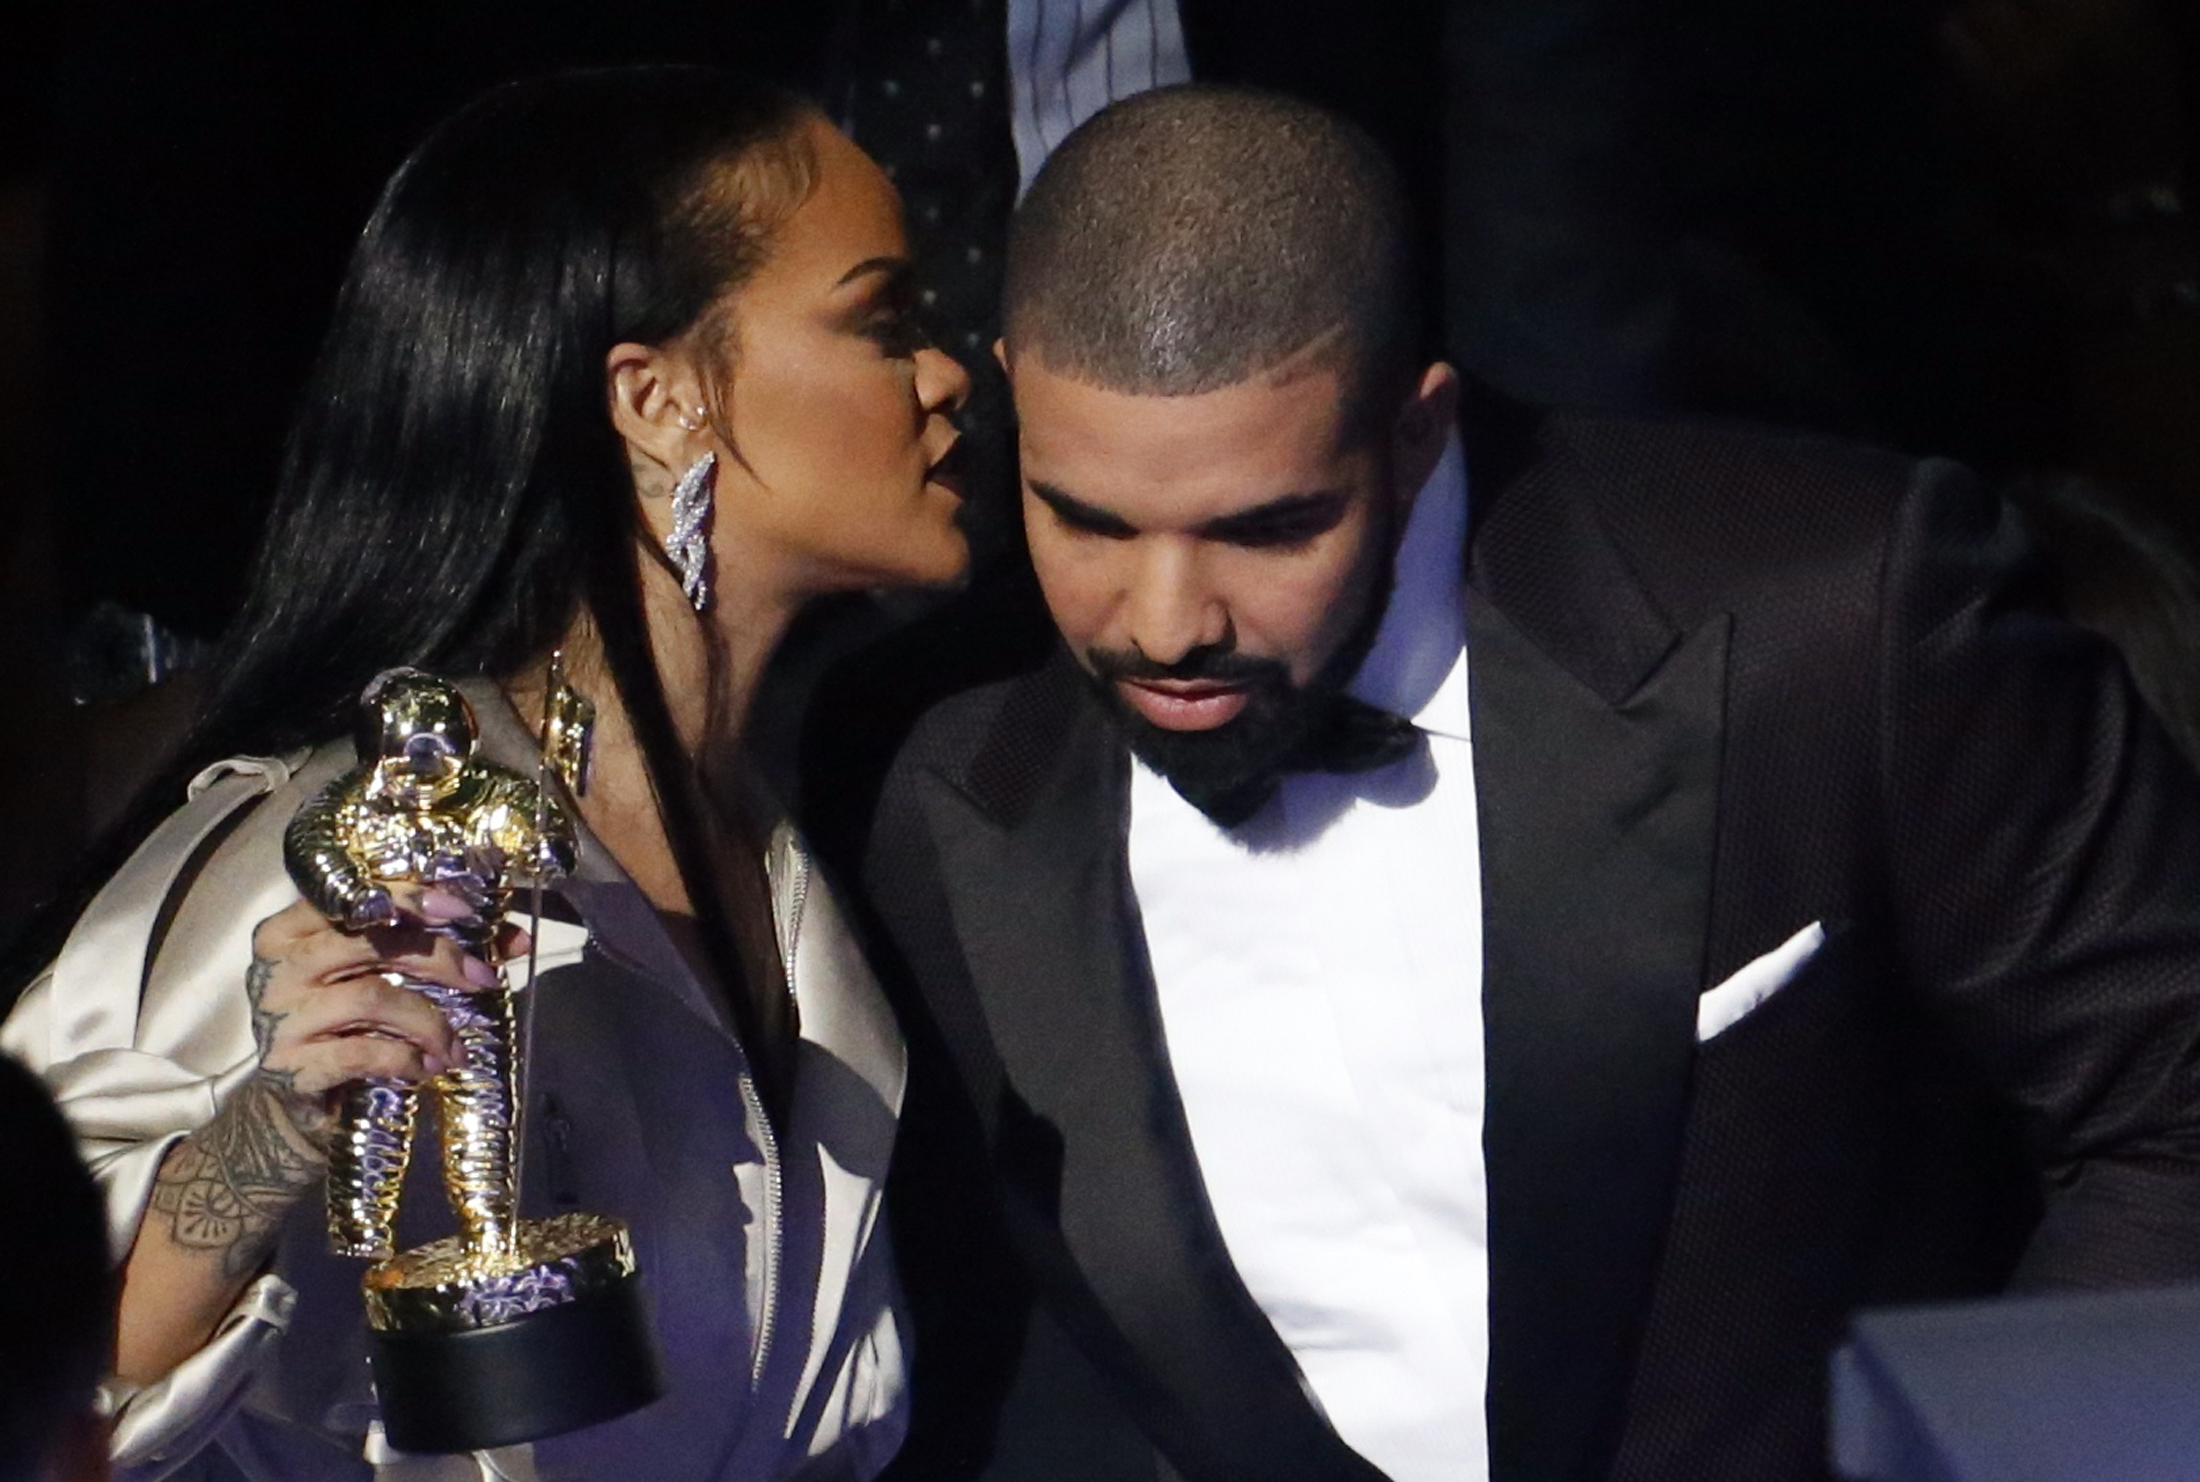 chris brown and rihanna 2016 relationship